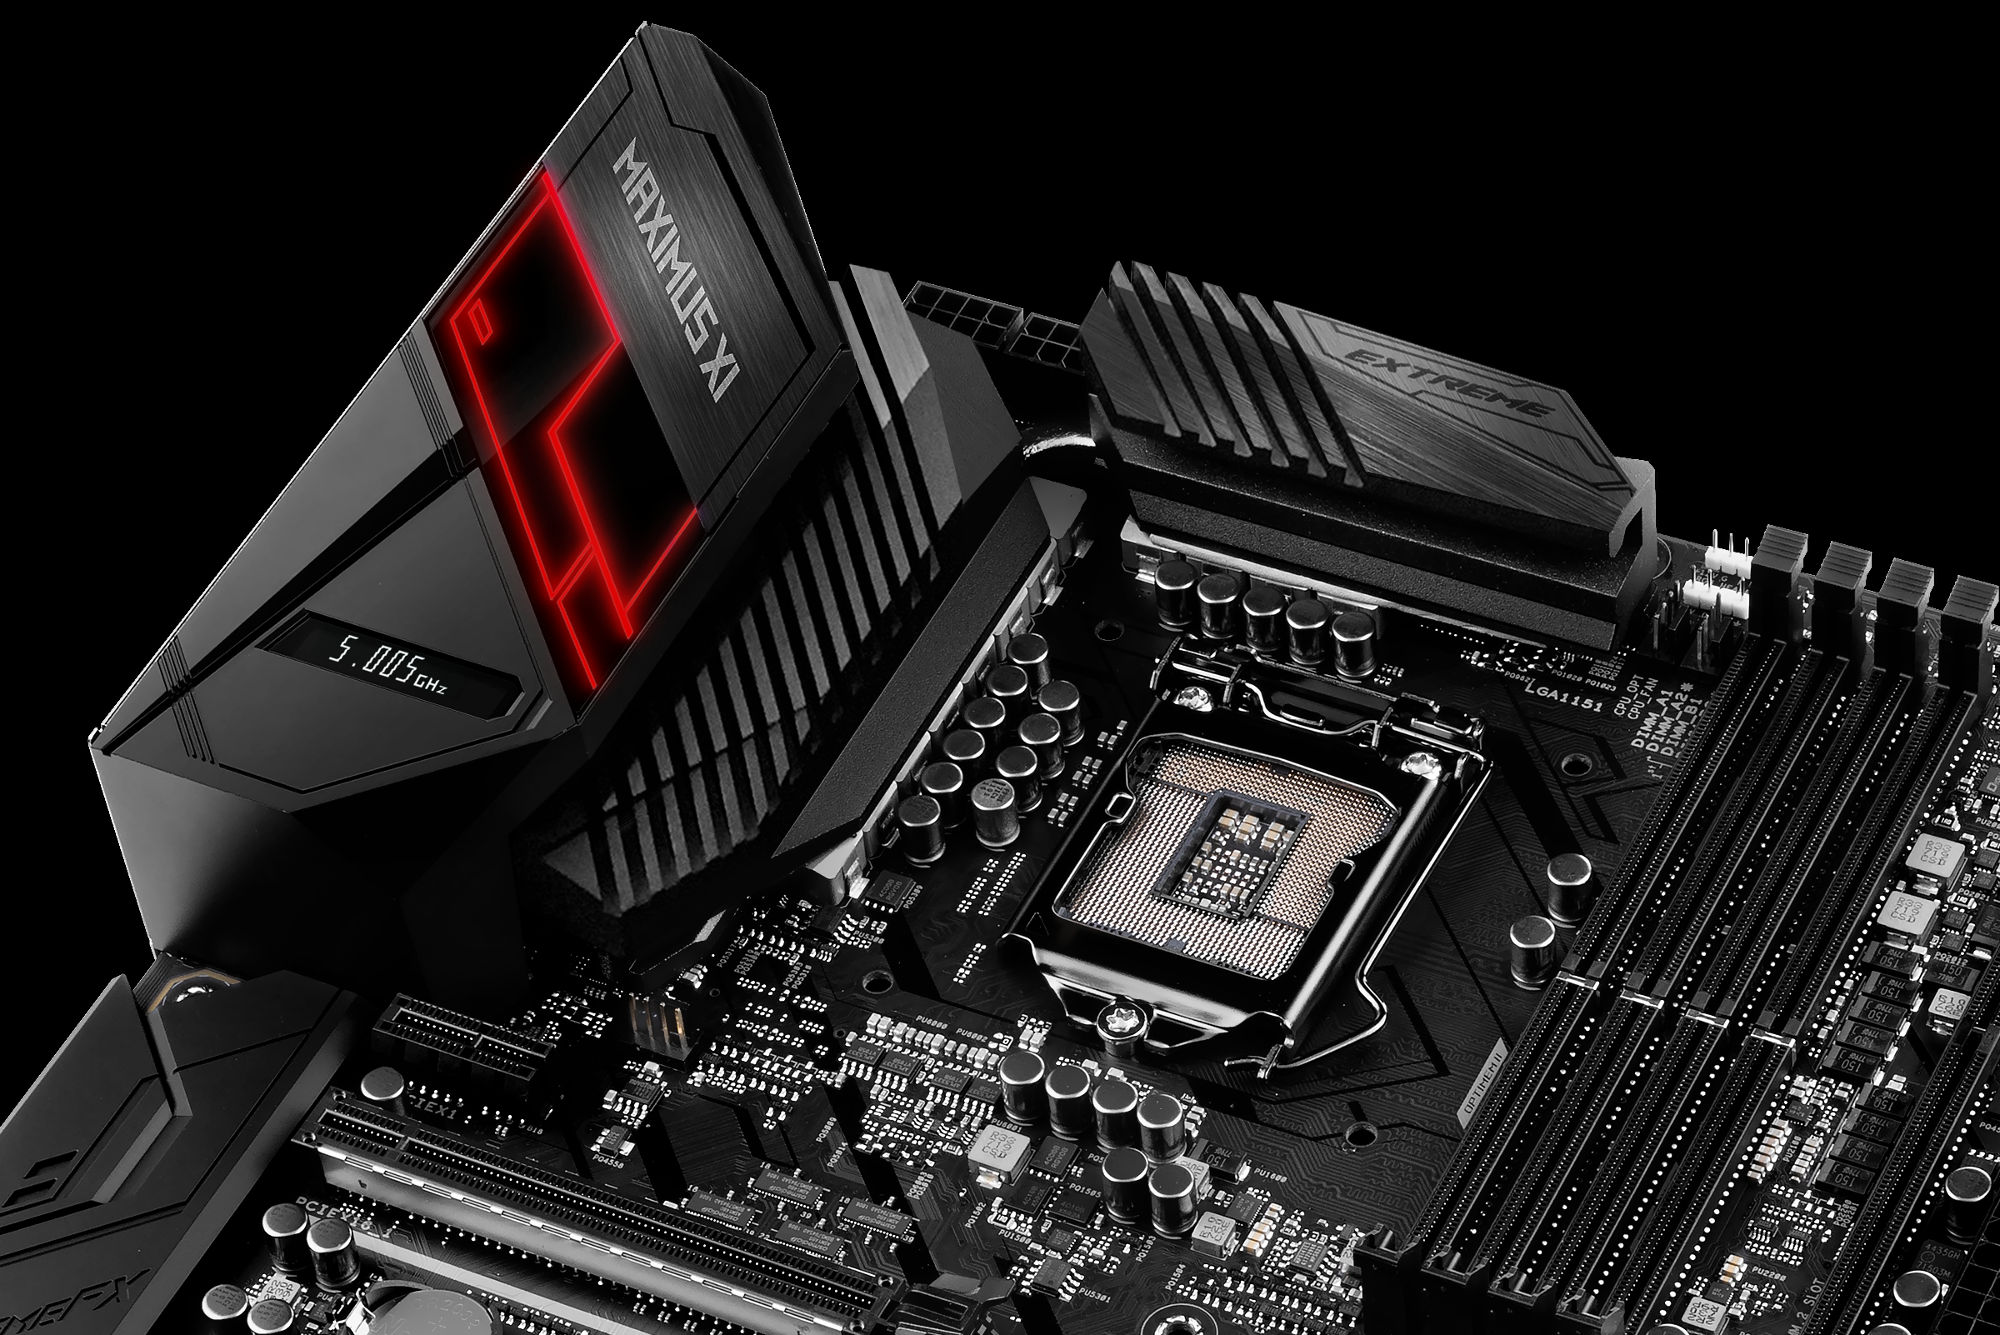 Introducing Rog Maximus And Strix Z390 Gaming Motherboards For 8 Monochrome Topology Of A Printed Circuit Board Stock Photos Image Maximusxiextreme